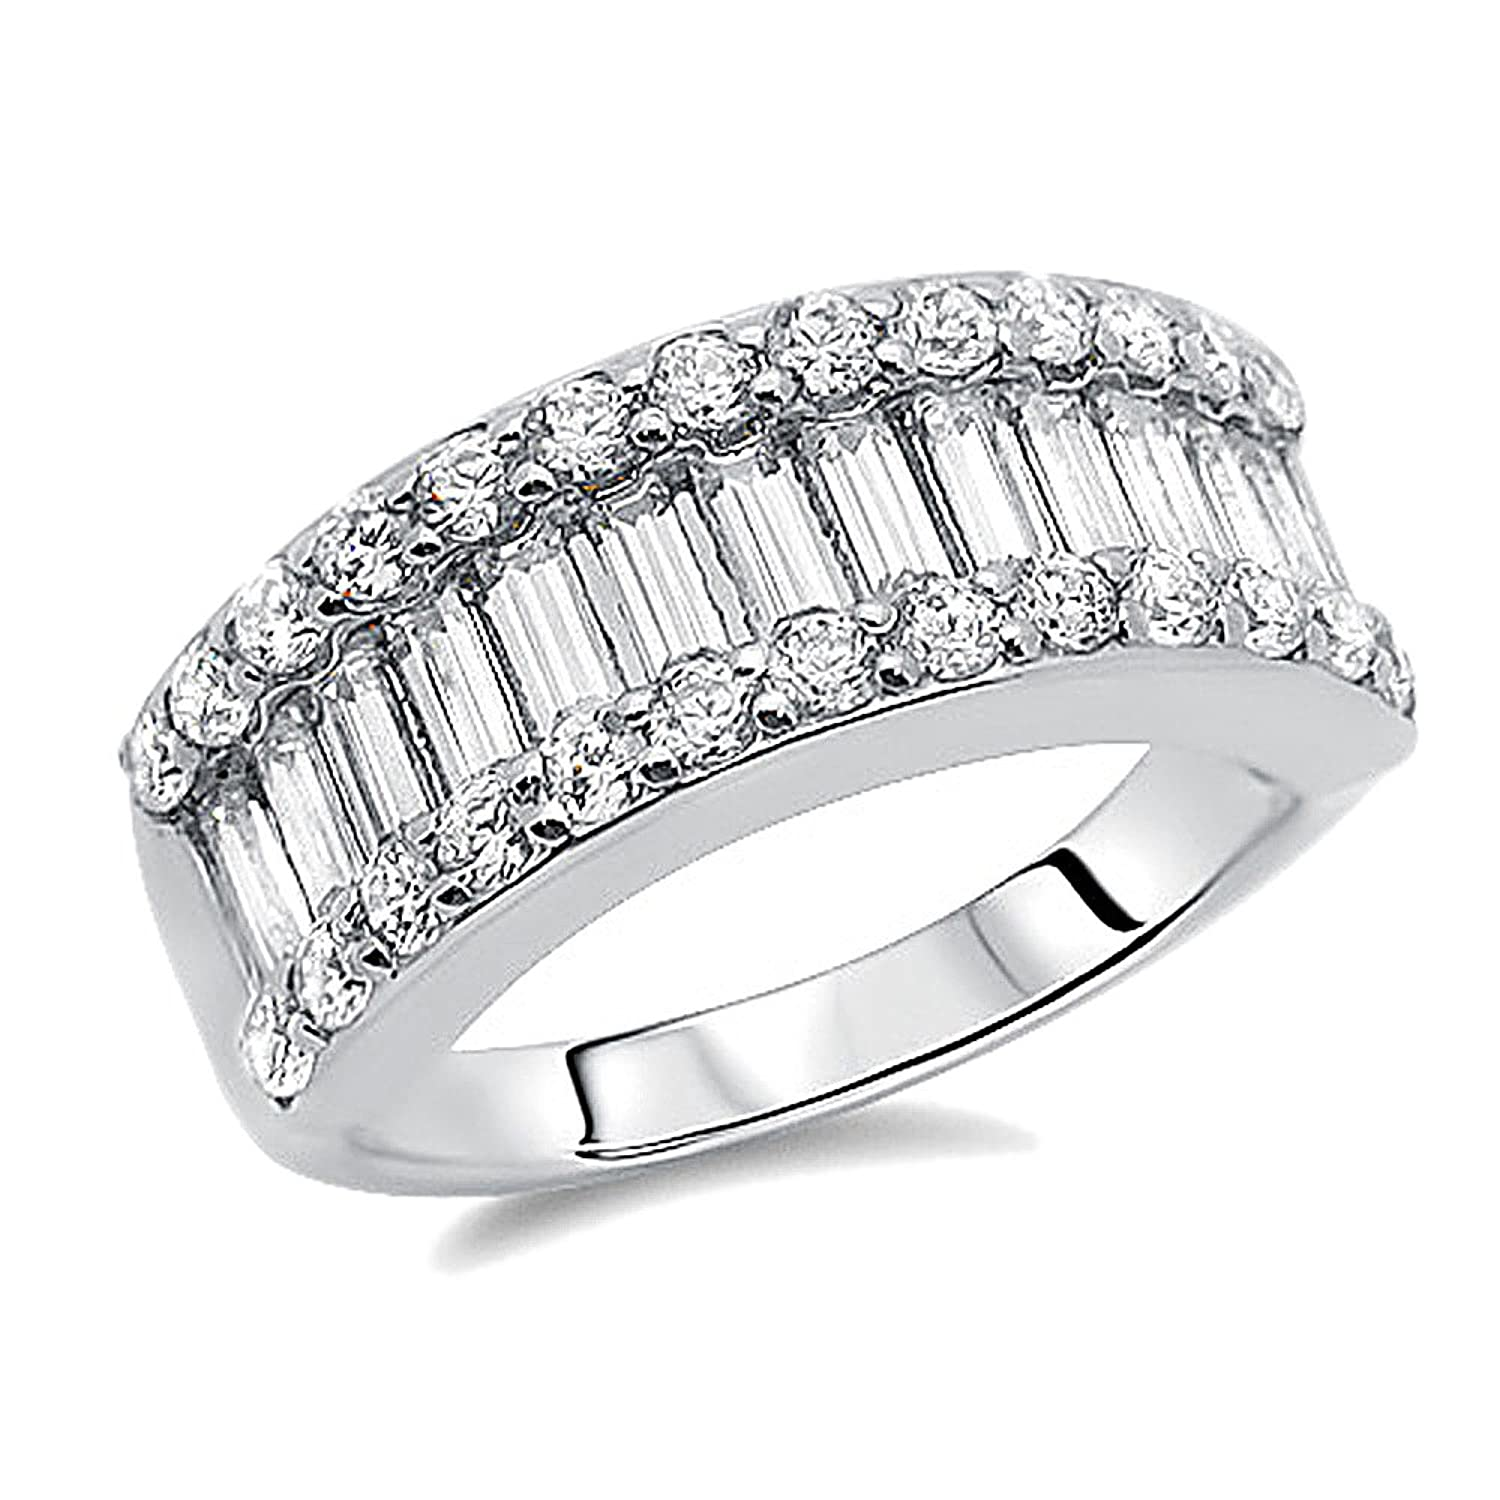 ring platinum white diamond gold bands round wedding eternity band baguette women s